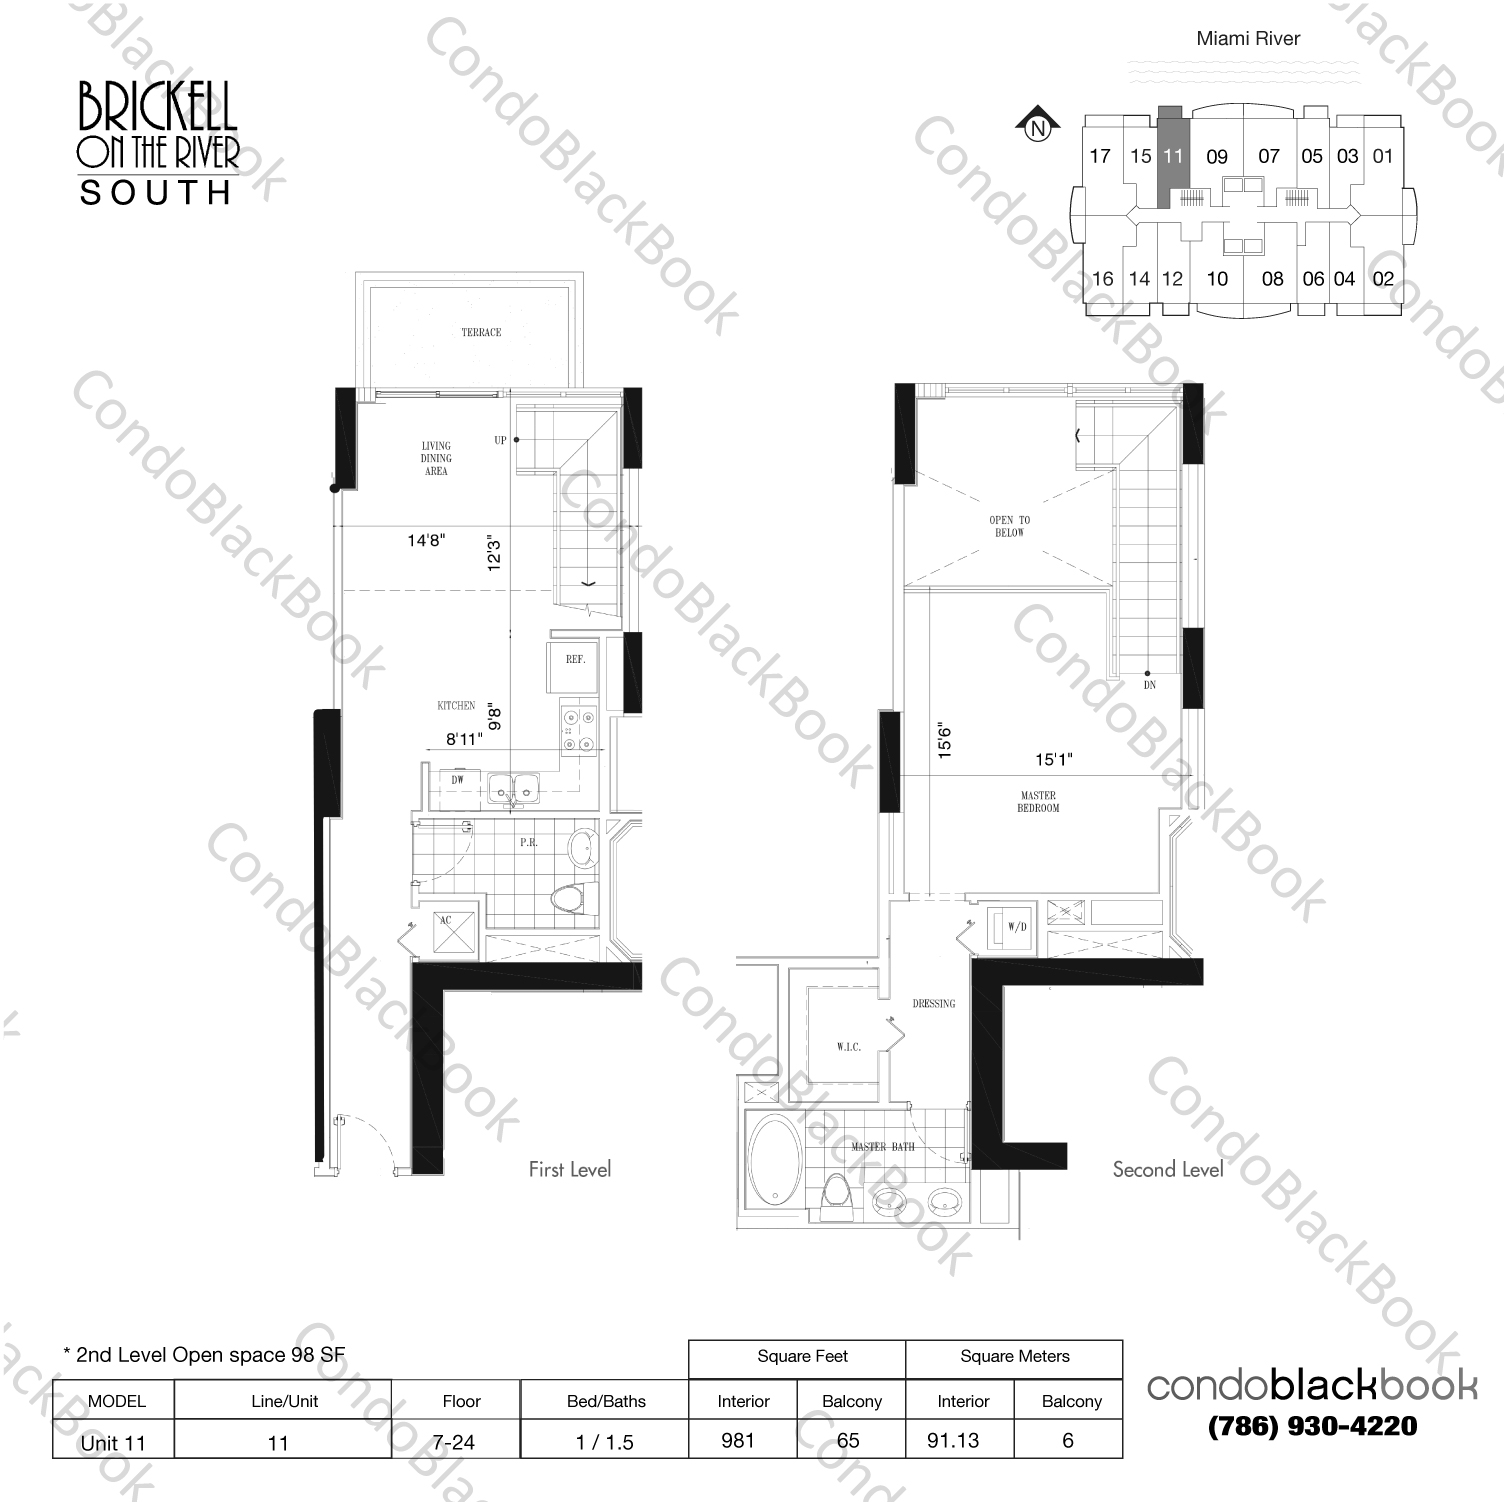 Floor plan for Brickell on the River South Brickell Miami, model Unit 11, line 11, 1/1.5 bedrooms, 883 sq ft